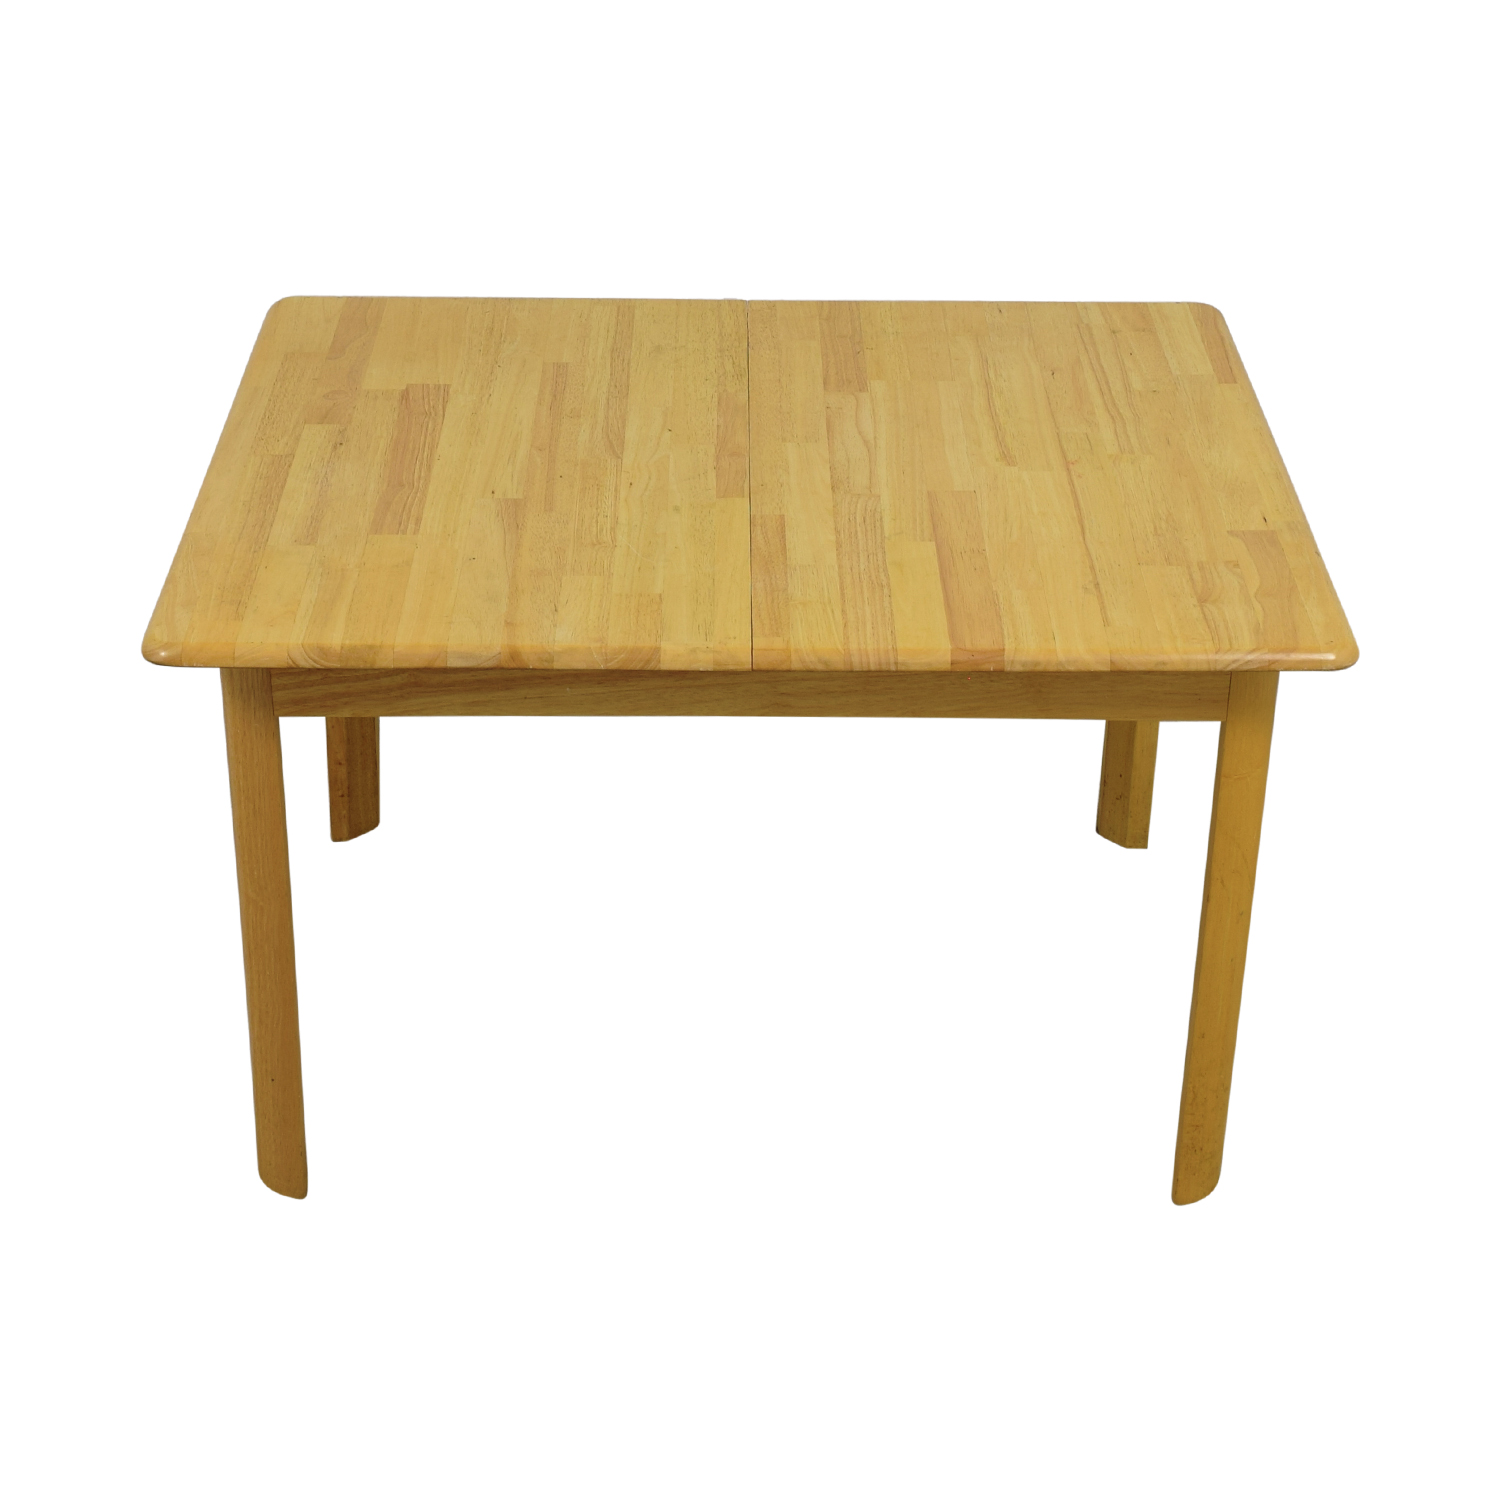 Natural Wood Dining Table with Extension Leaf second hand